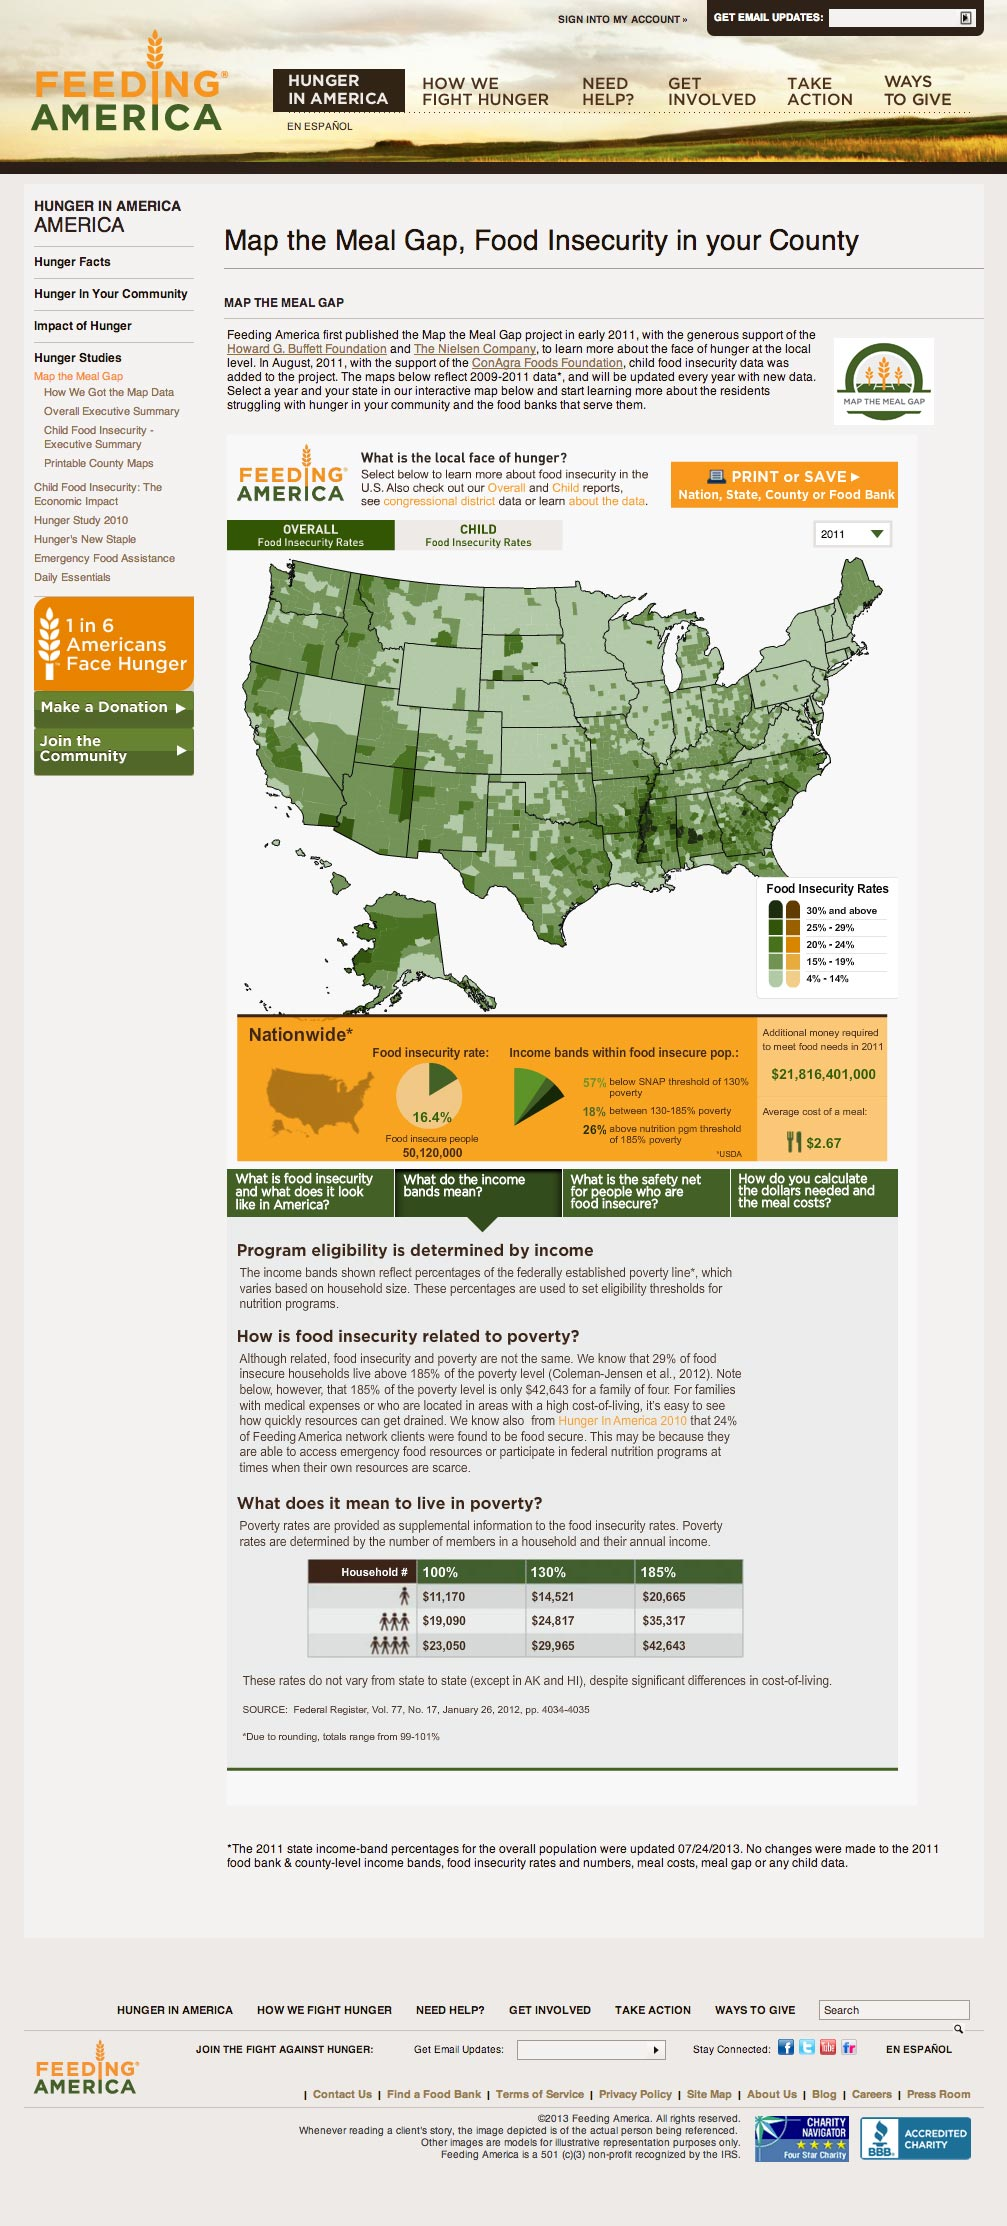 Feeding America - Map the Meal Gap